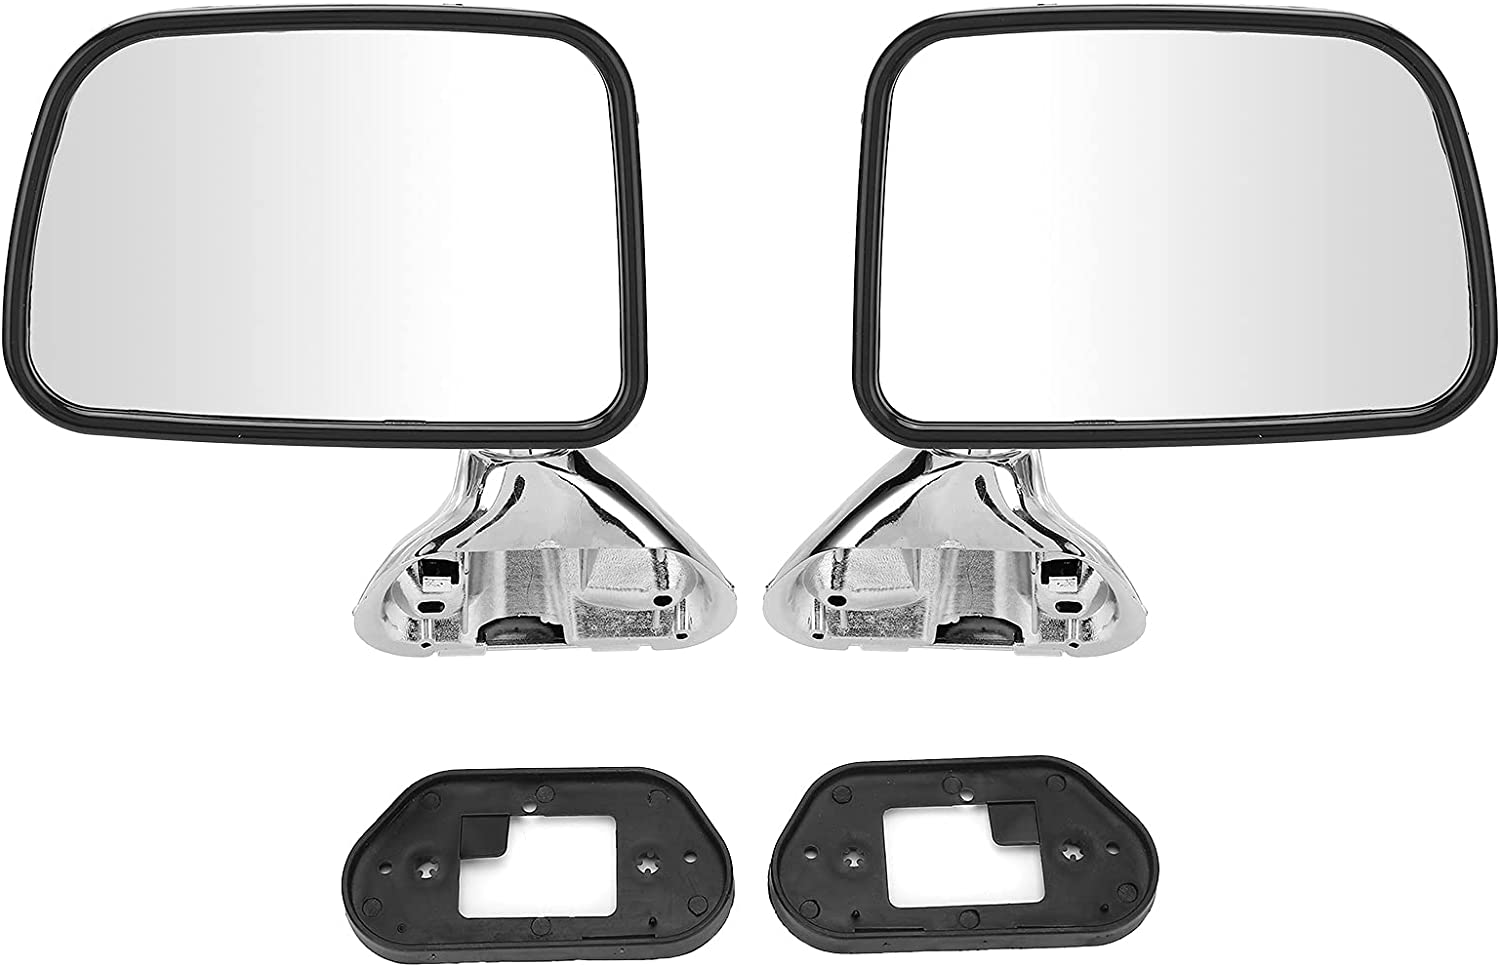 Popular product Max 84% OFF Pair Car Door Rearview Electroplated Dri Side Mirror